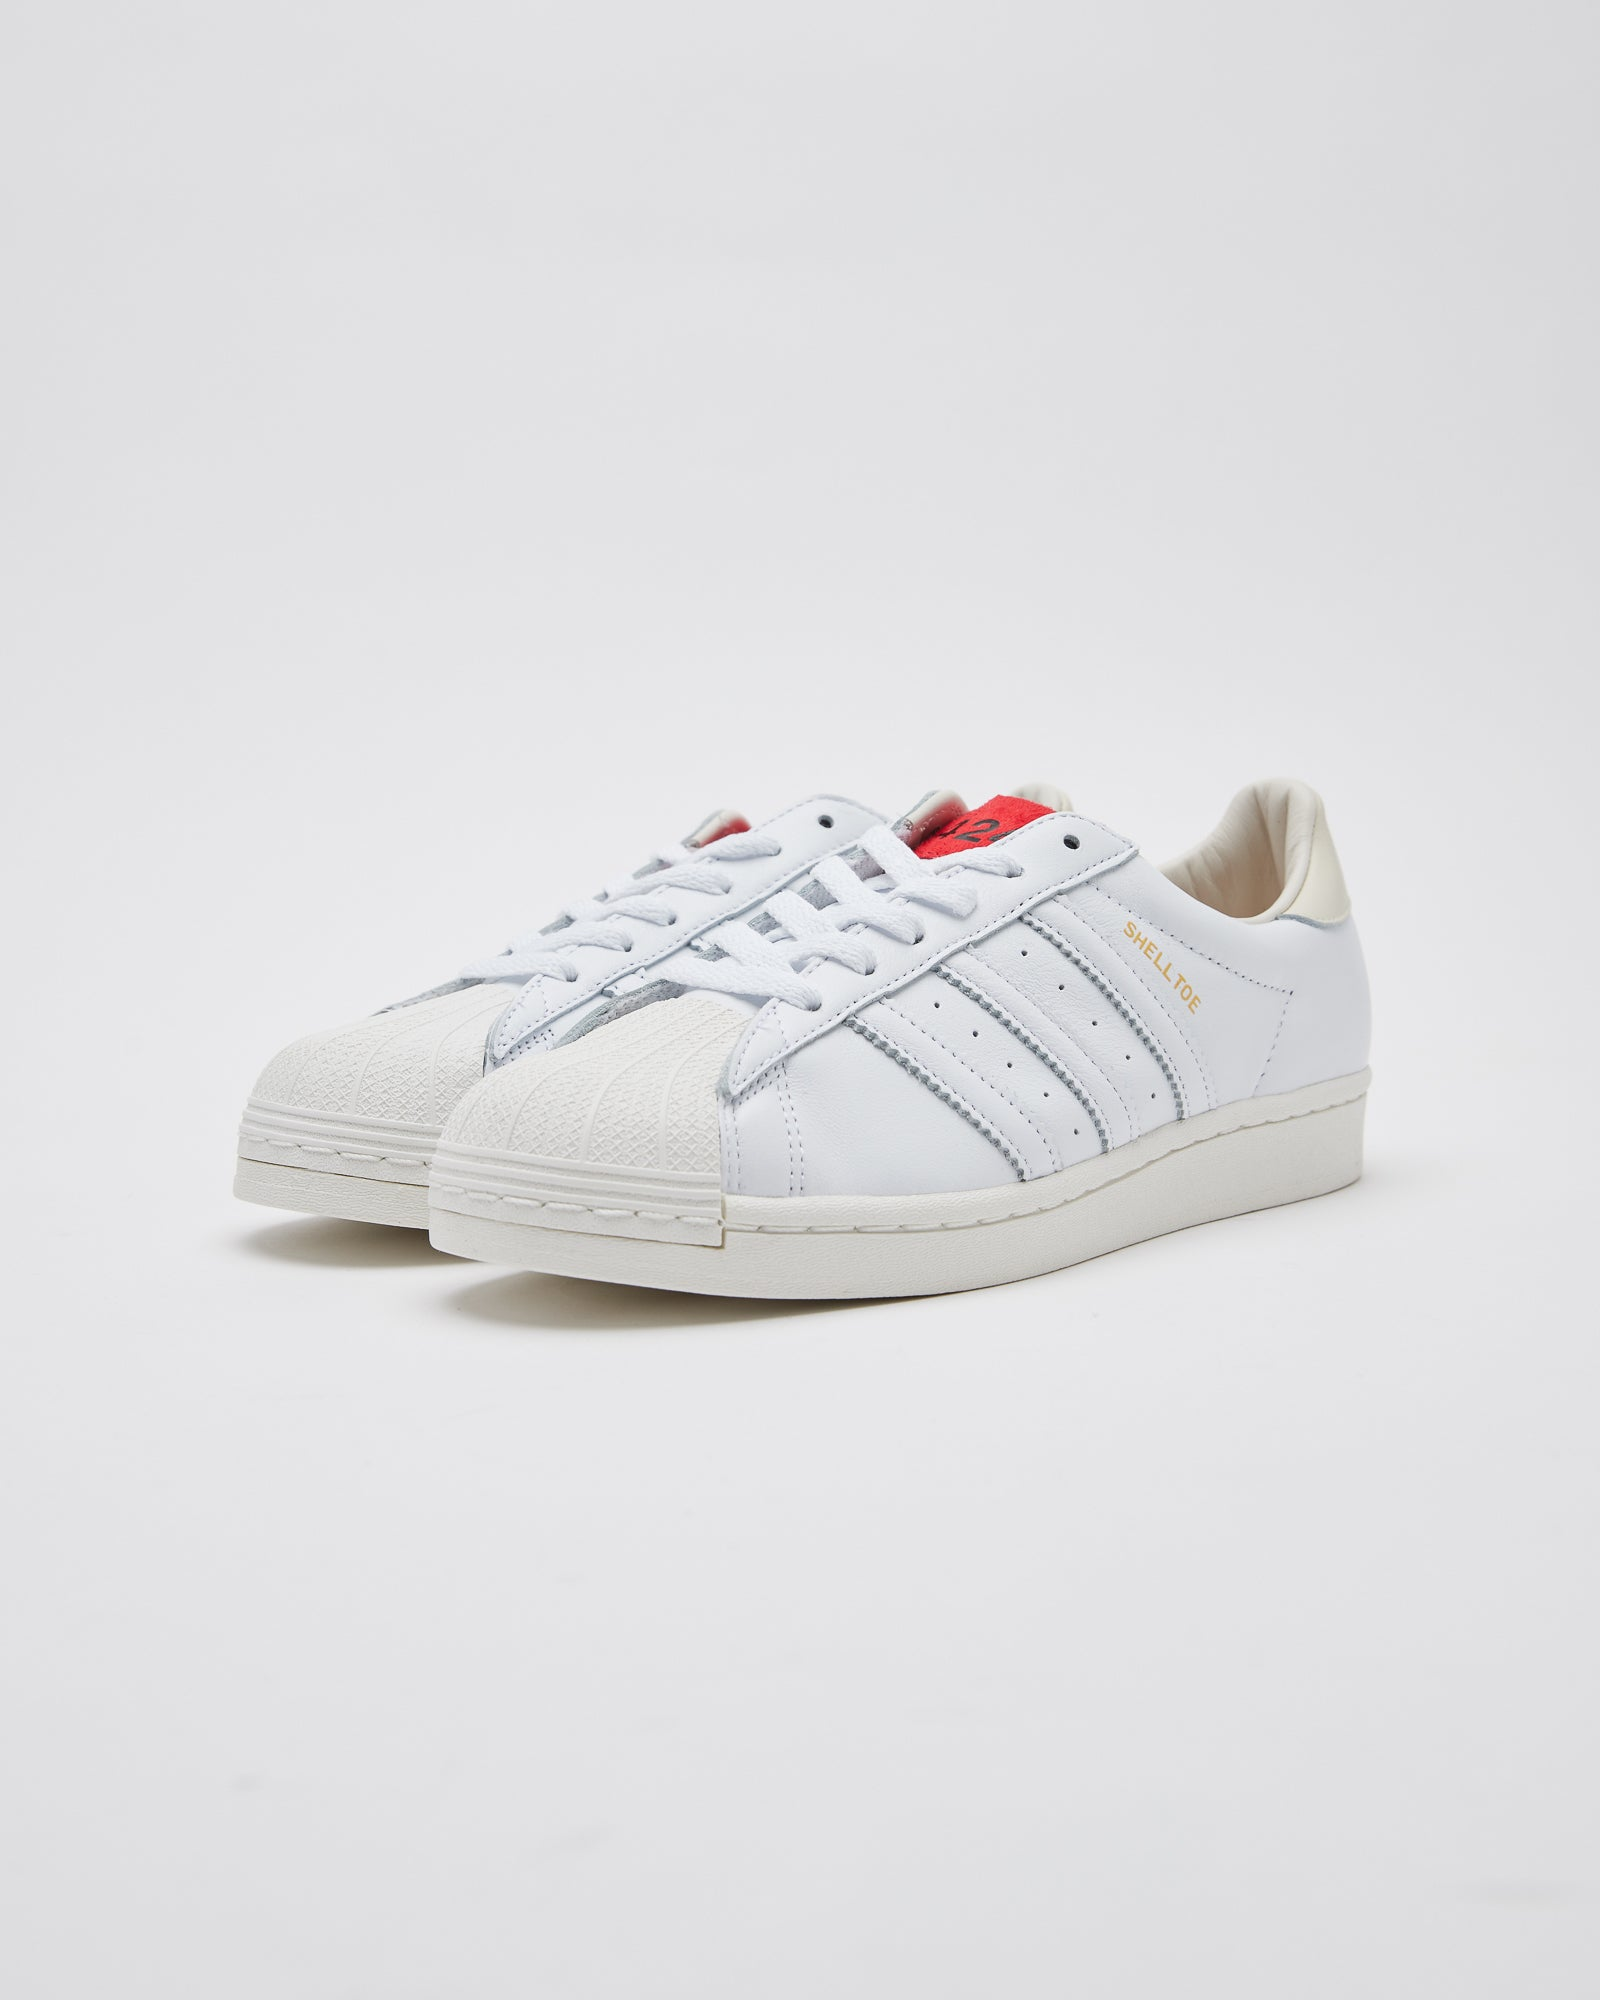 424 Shelltoe in Chalk White/Scarlet